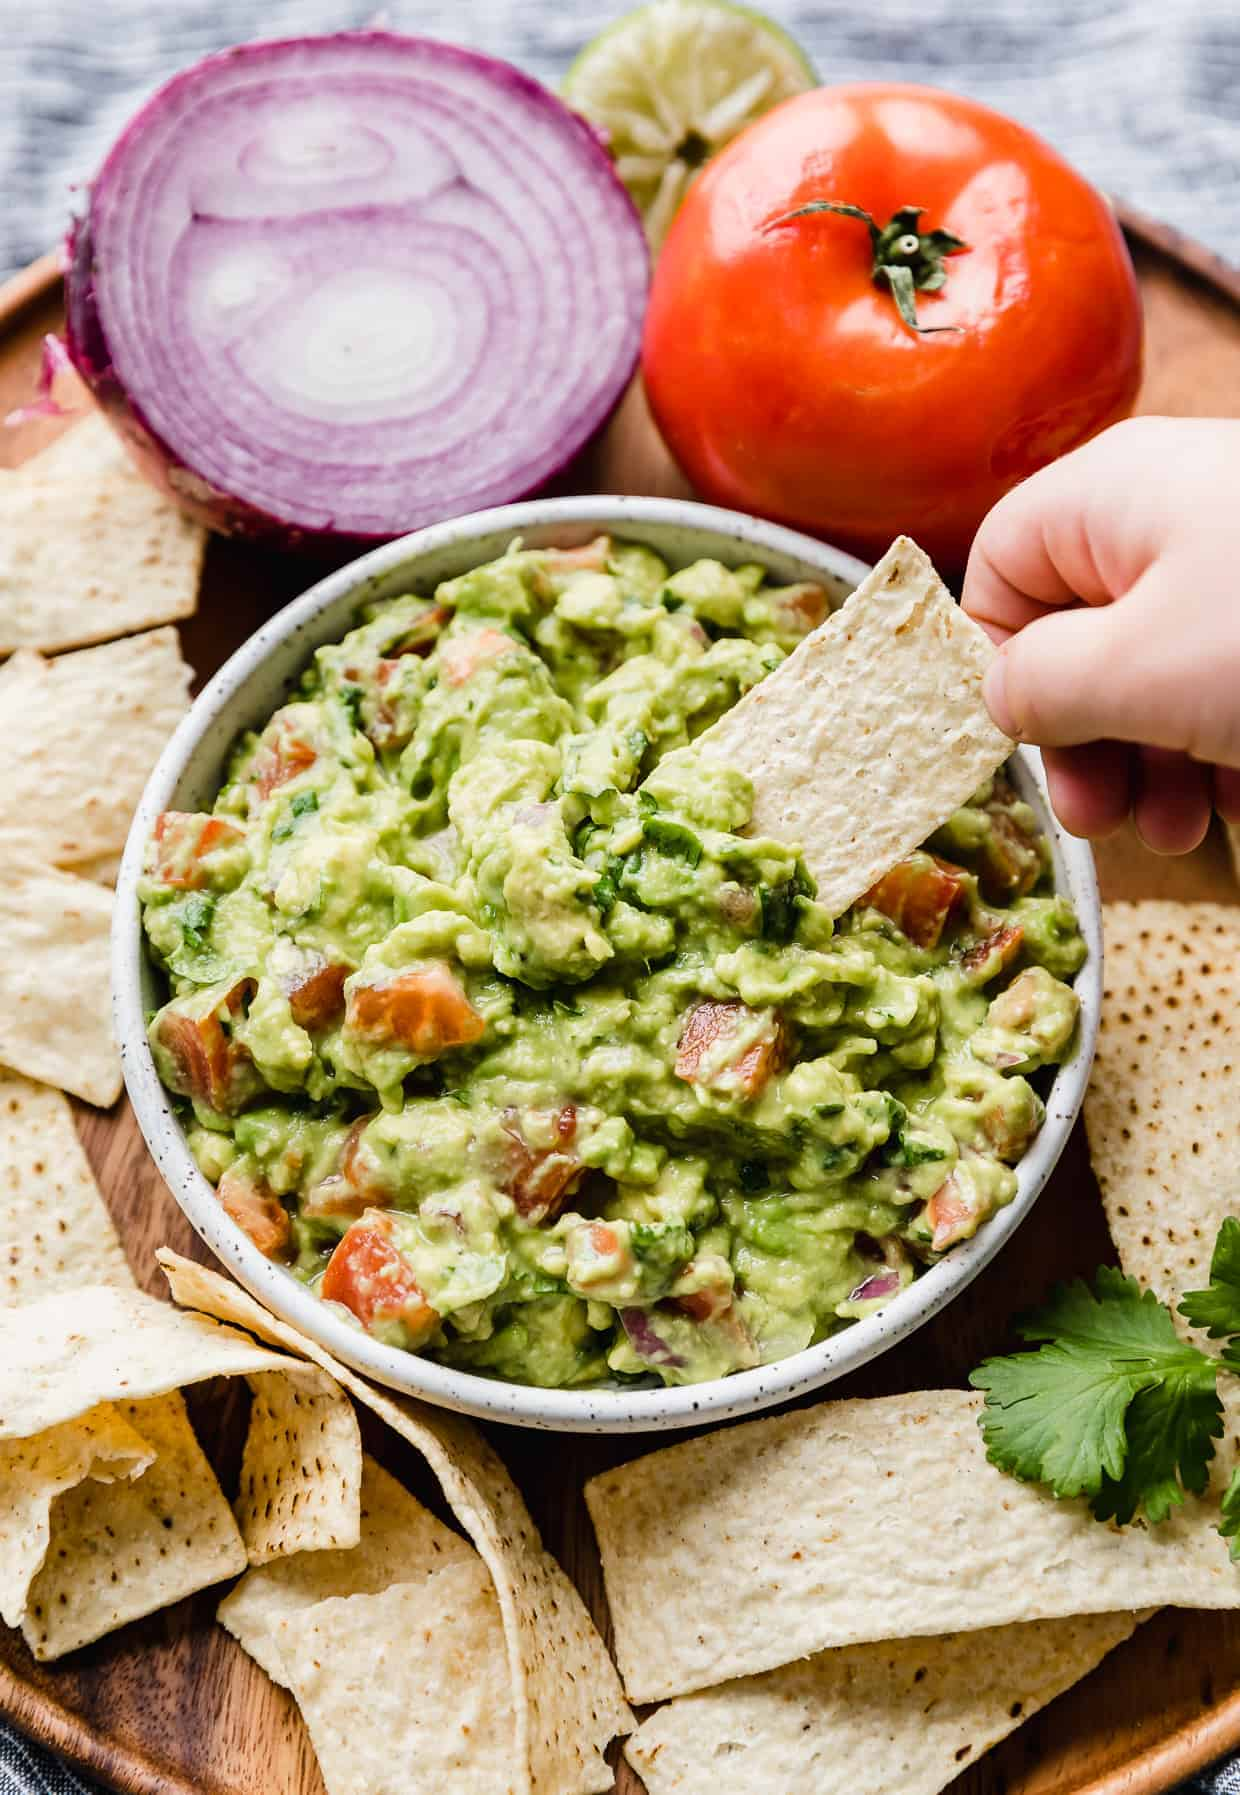 A small hand dipping a tortilla chip into a bowl of fresh guacamole with diced tomatoes in it.